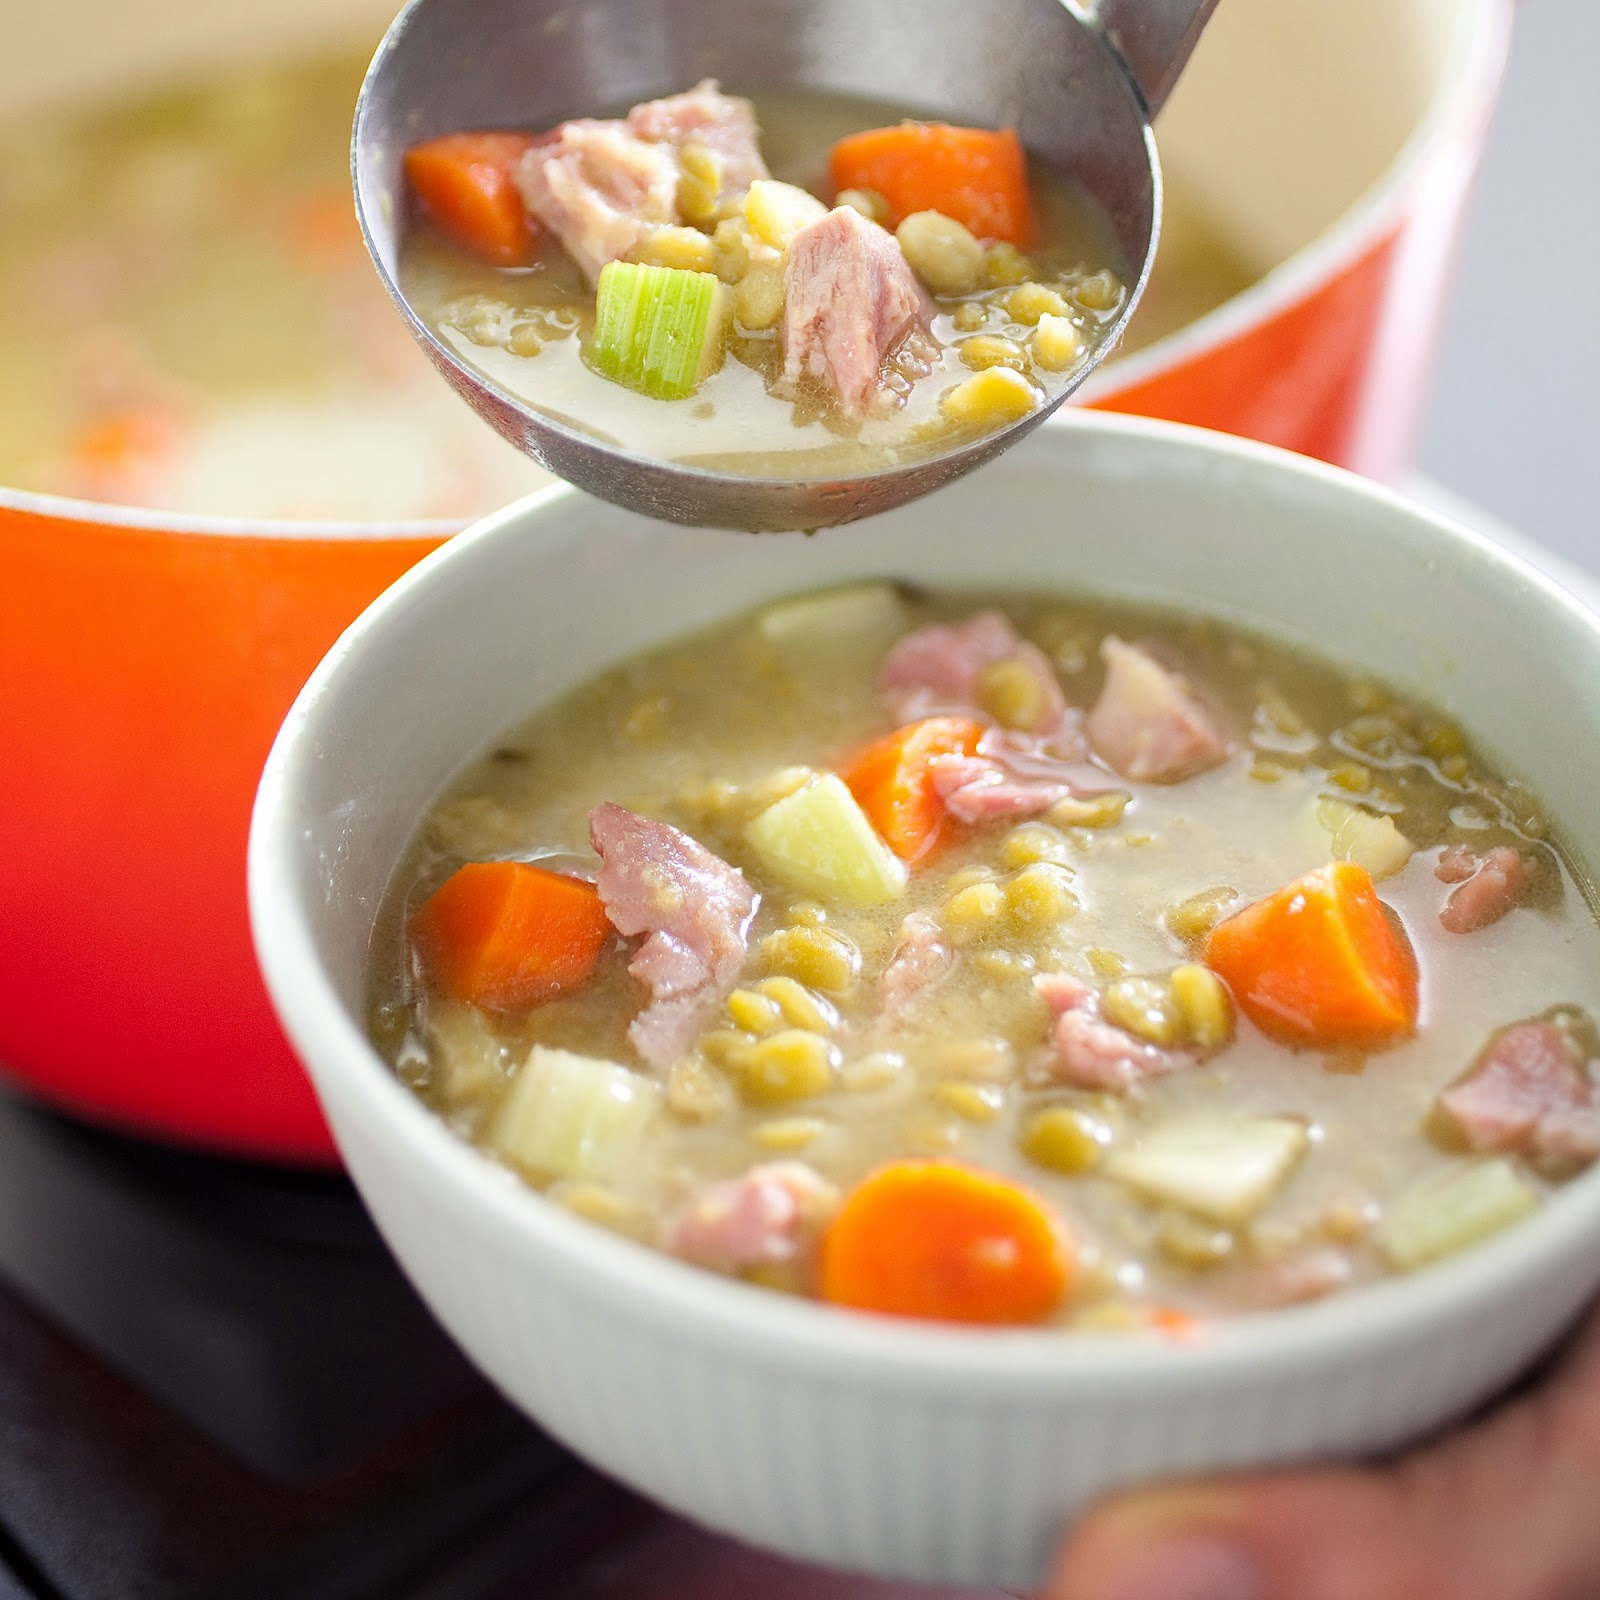 Beth's Blog: Split Pea and Ham Soup